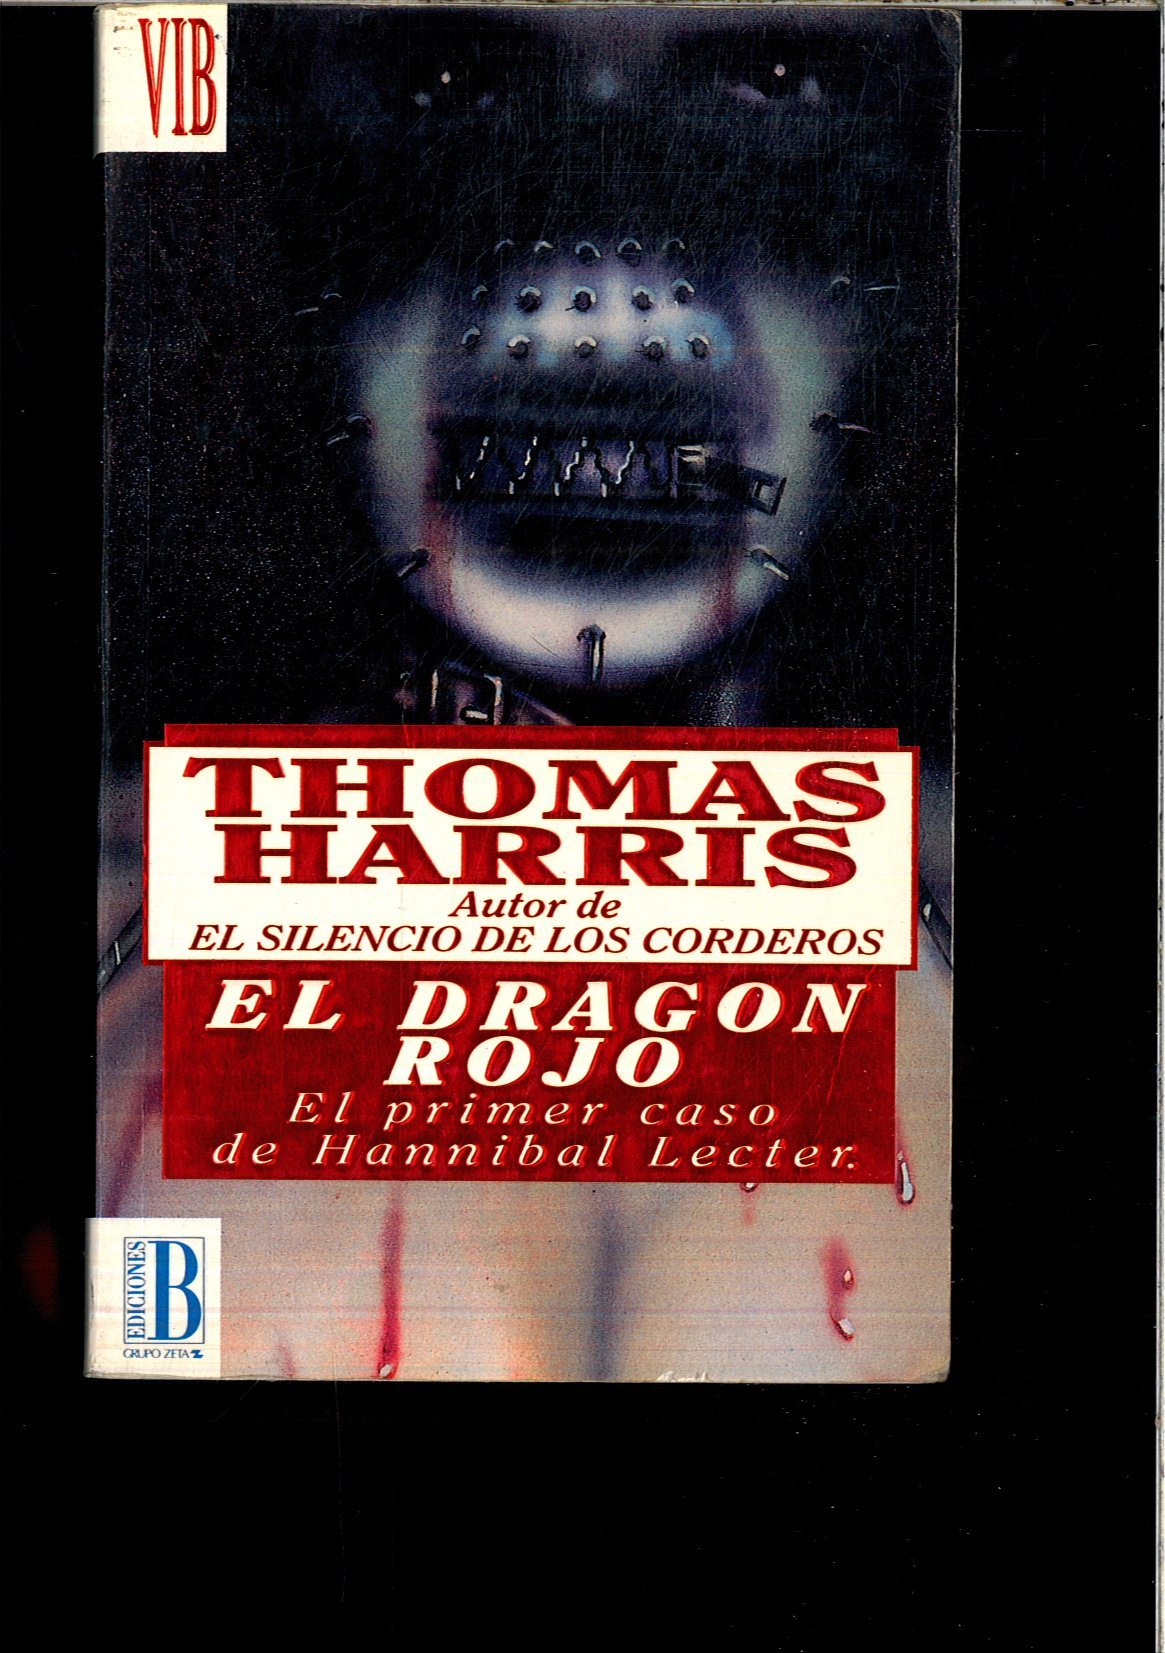 EL DRAGON ROJO: Amazon.es: THOMAS HARRIS: Libros